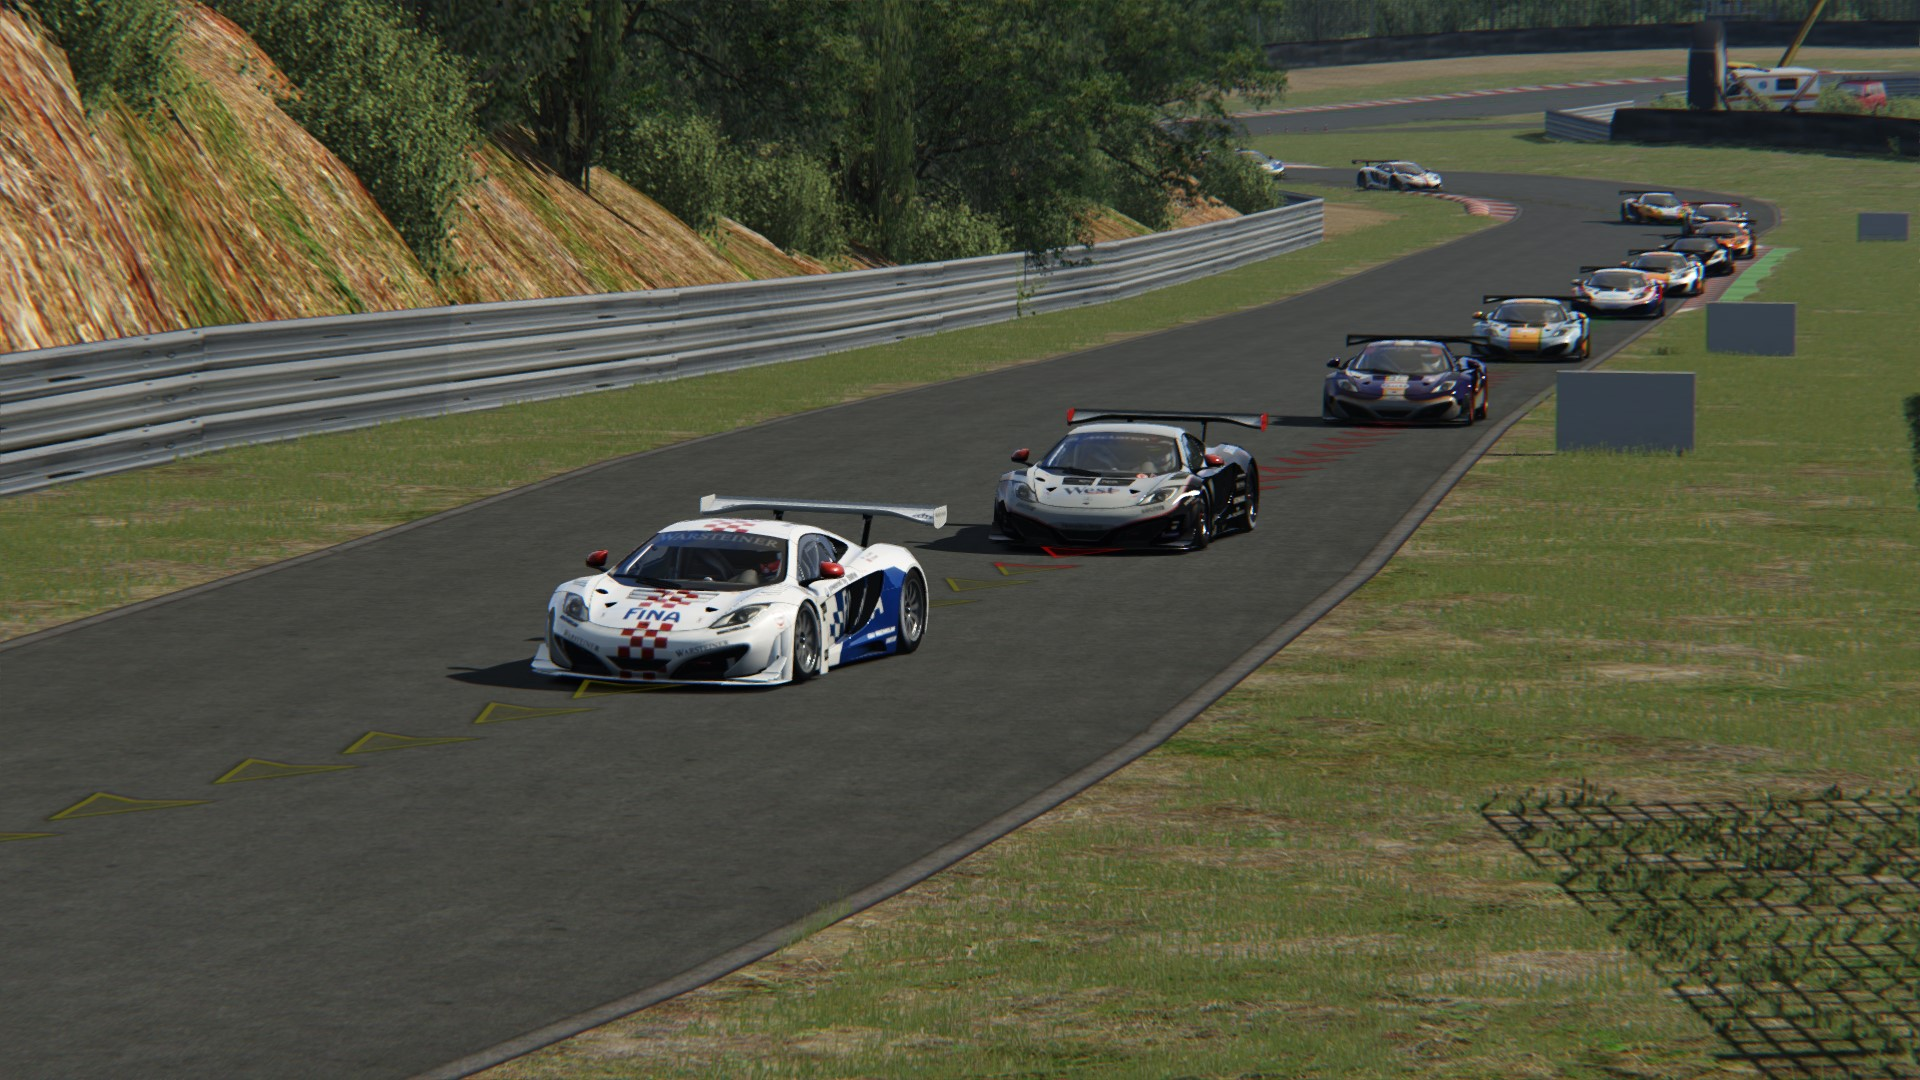 Screenshot_mclaren_mp412c_gt3_sportsland_sugo_7-4-116-9-59-6.jpg